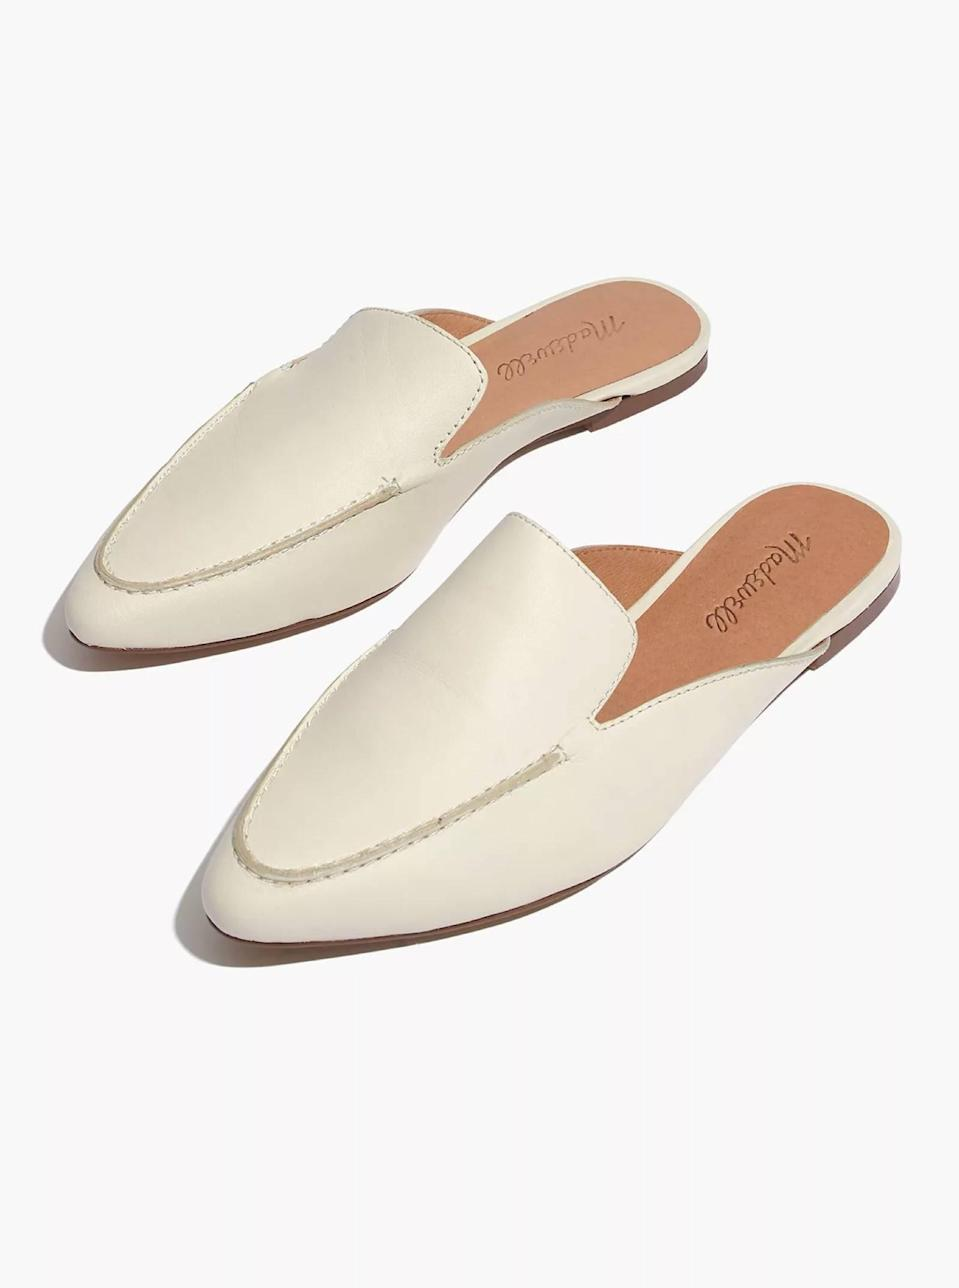 """These slip-on white loafers are the perfect finishing touch to any work-ready outfit. The stitch detailing and pointed toe will instantly zhuzh up whatever else you have on up top. $118, Madewell. <a href=""""https://www.madewell.com/the-frances-skimmer-mule-in-leather-AN113.html?"""" rel=""""nofollow noopener"""" target=""""_blank"""" data-ylk=""""slk:Get it now!"""" class=""""link rapid-noclick-resp"""">Get it now!</a>"""